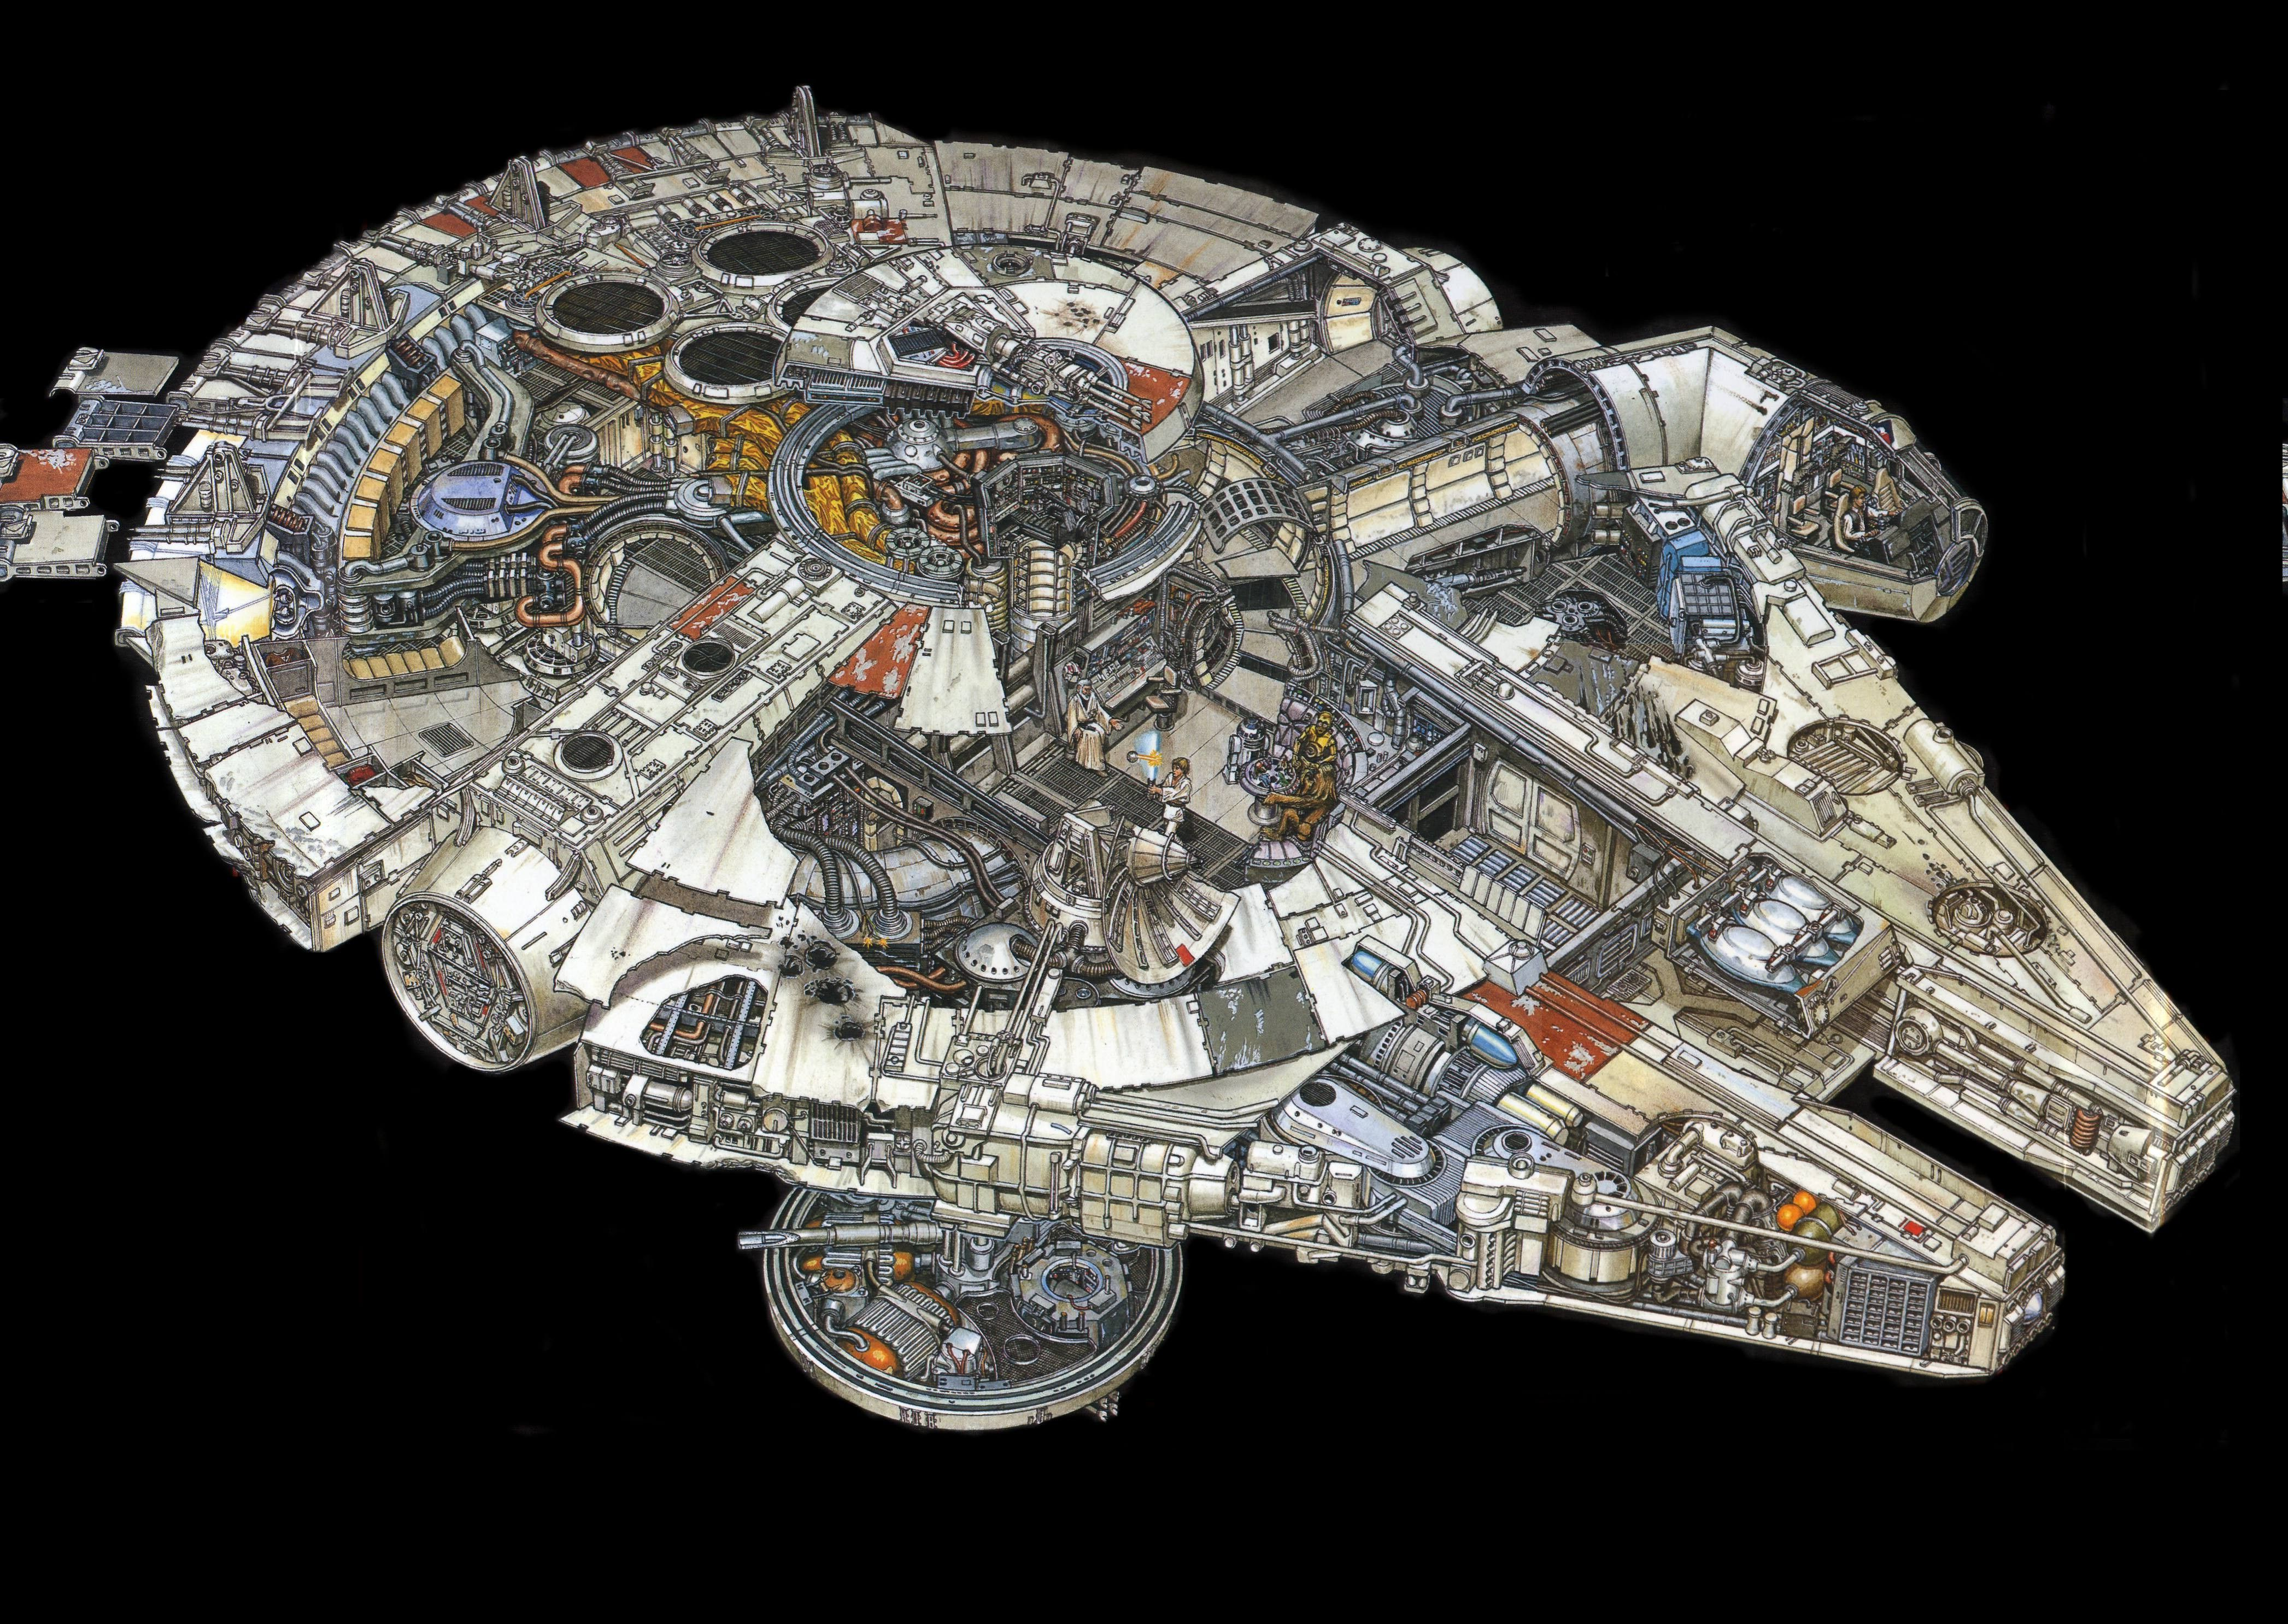 Star Wars Millennium Falcon Wallpapers Hd Desktop And Mobile